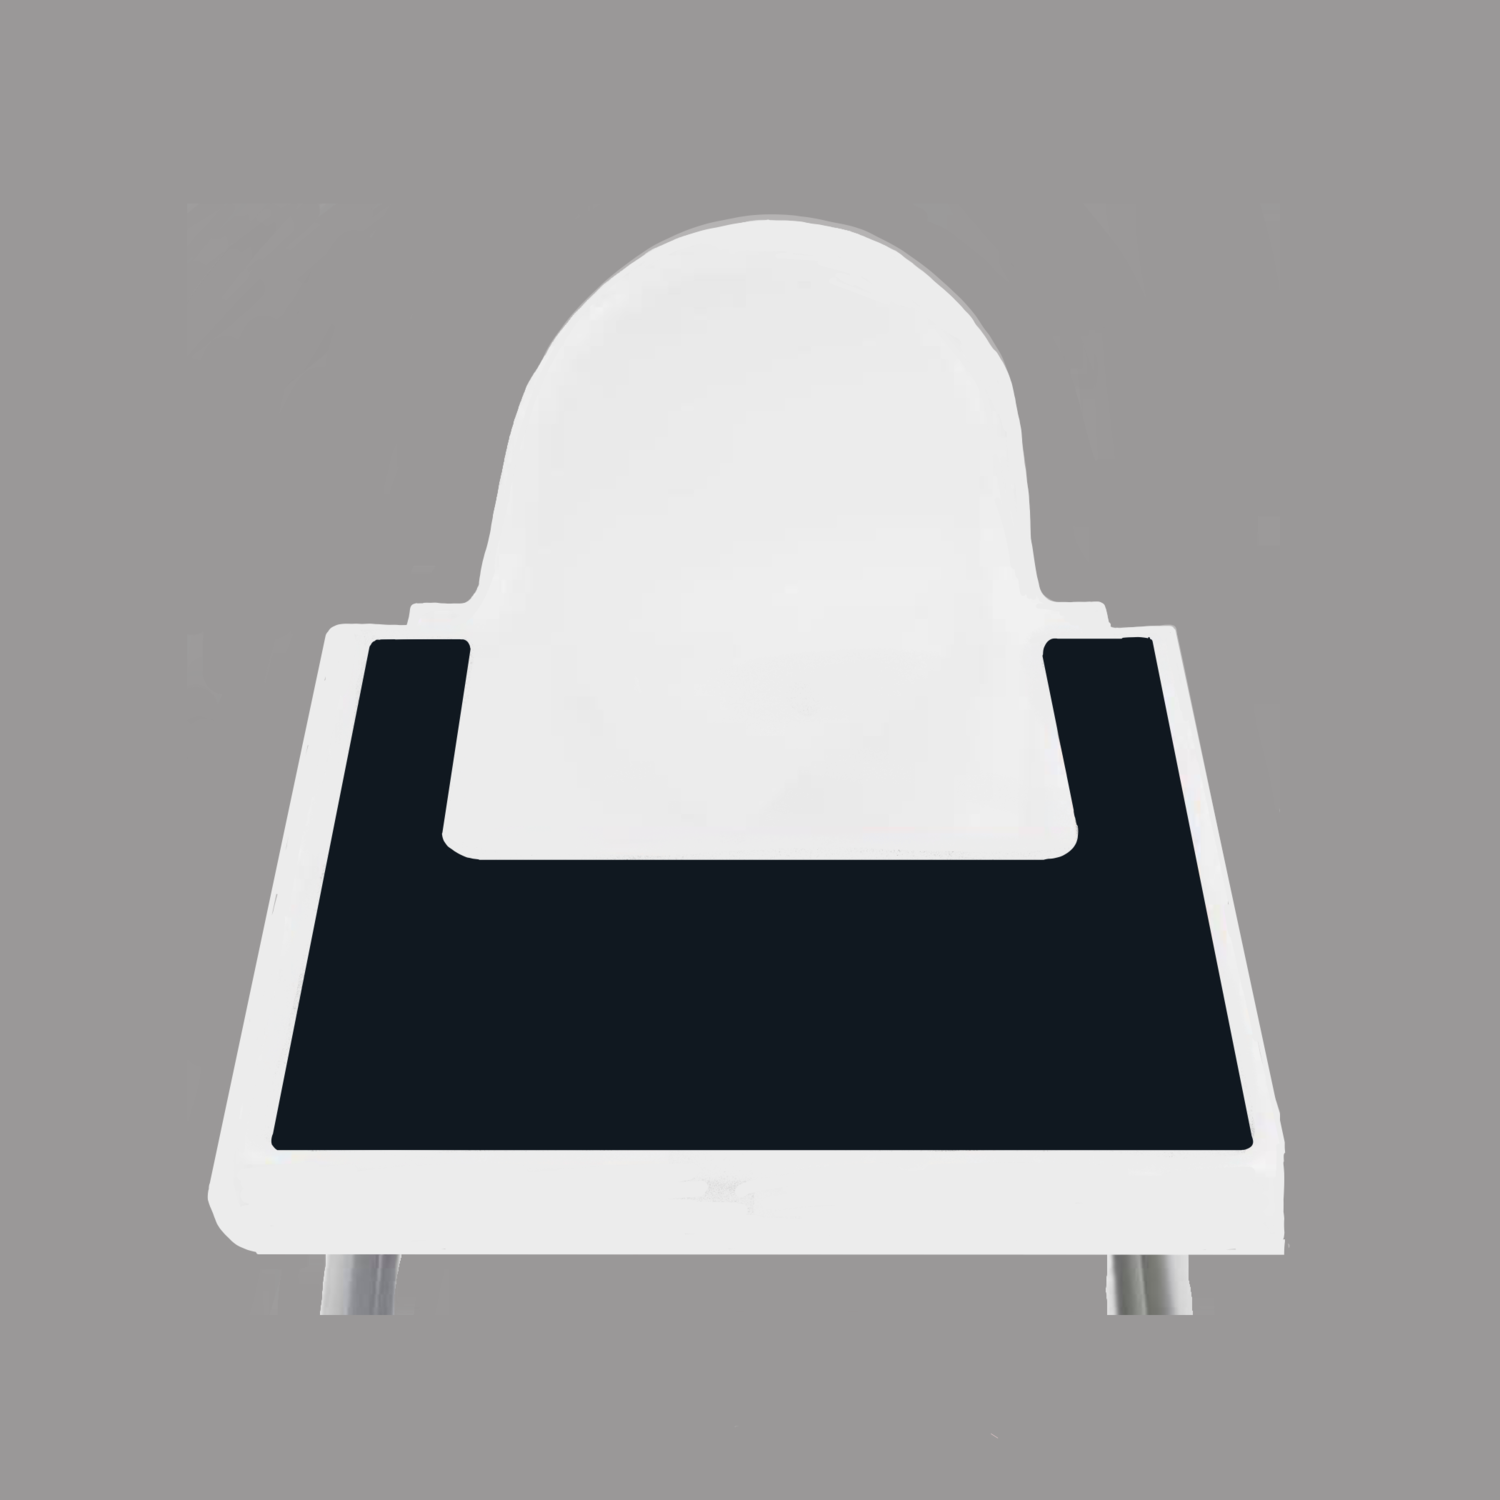 Onyx Black IKEA Highchair Placemat